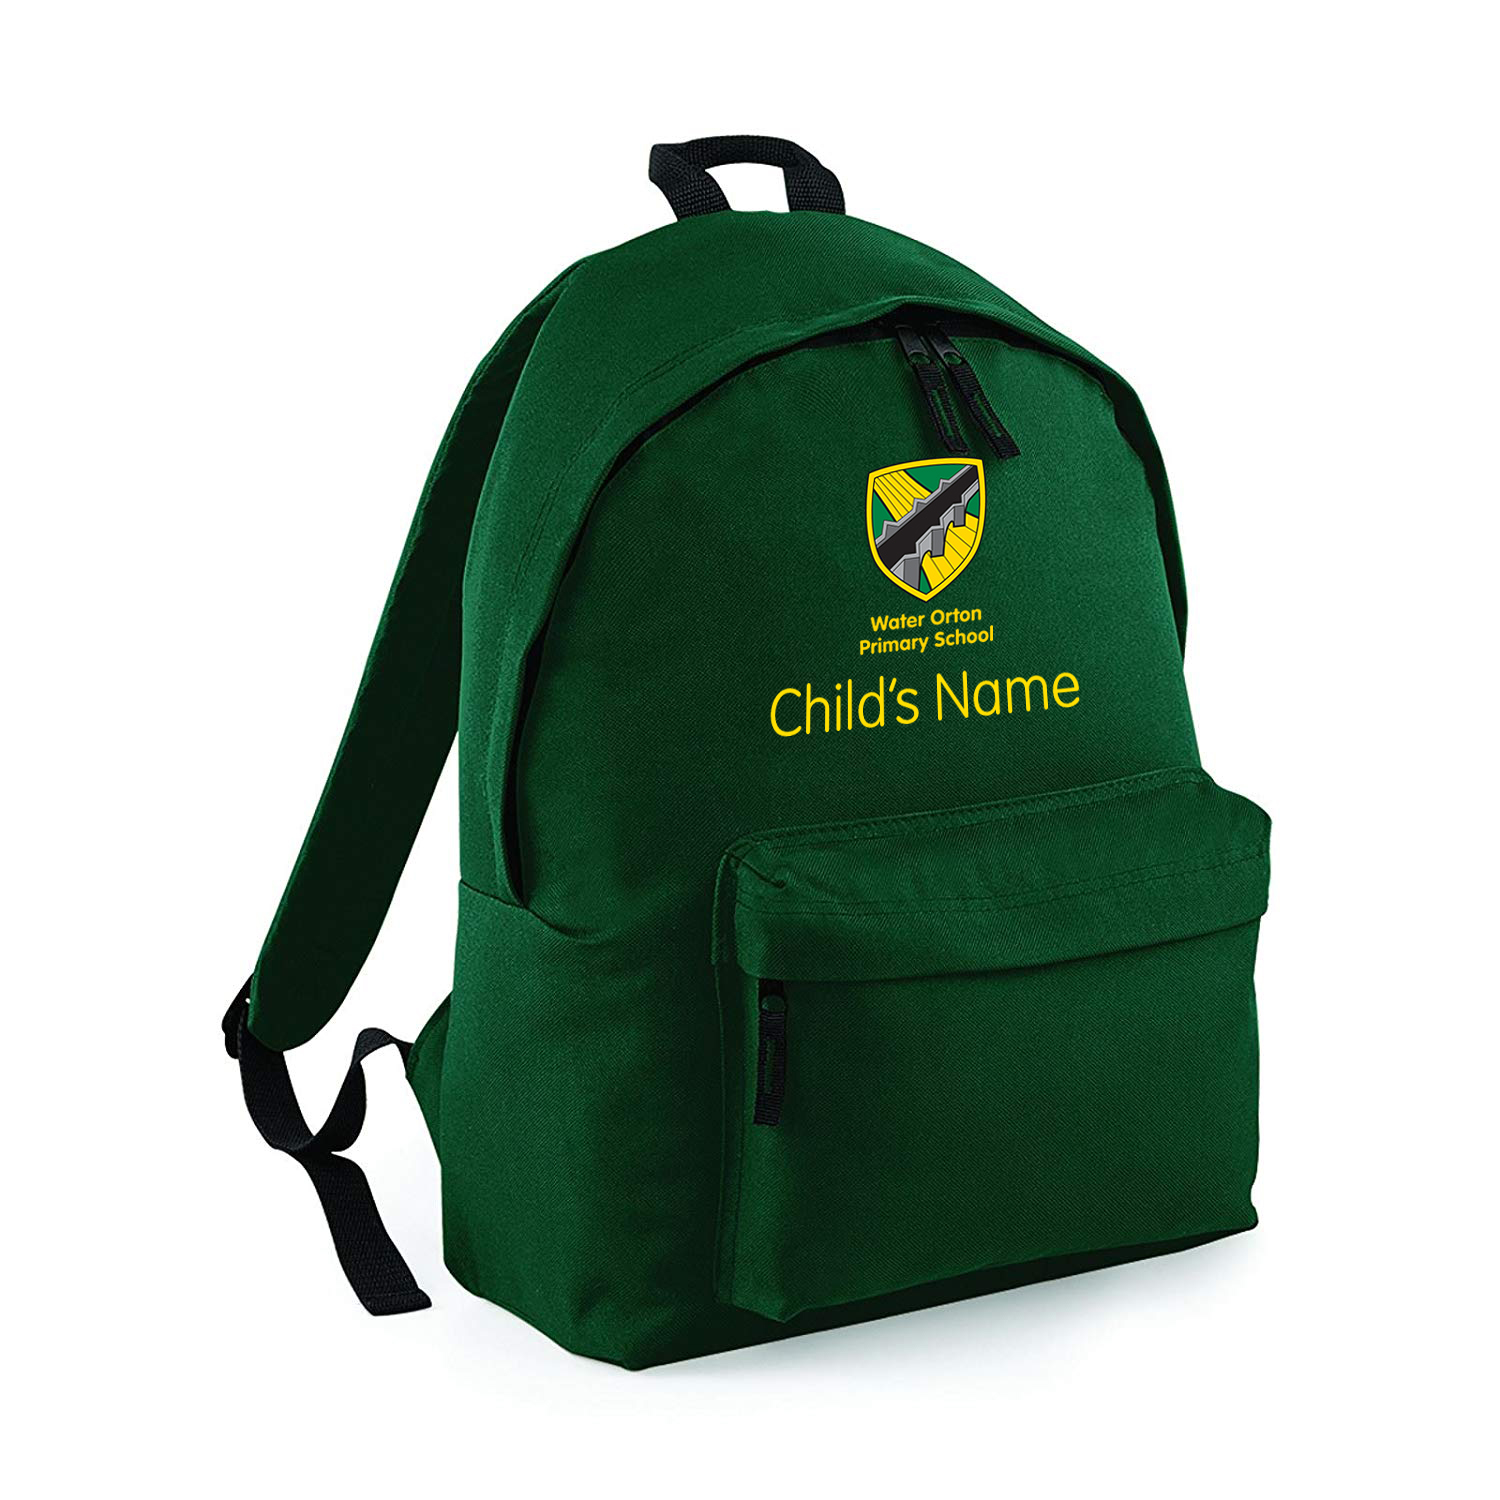 Water Orton Primary School Backpack with Name